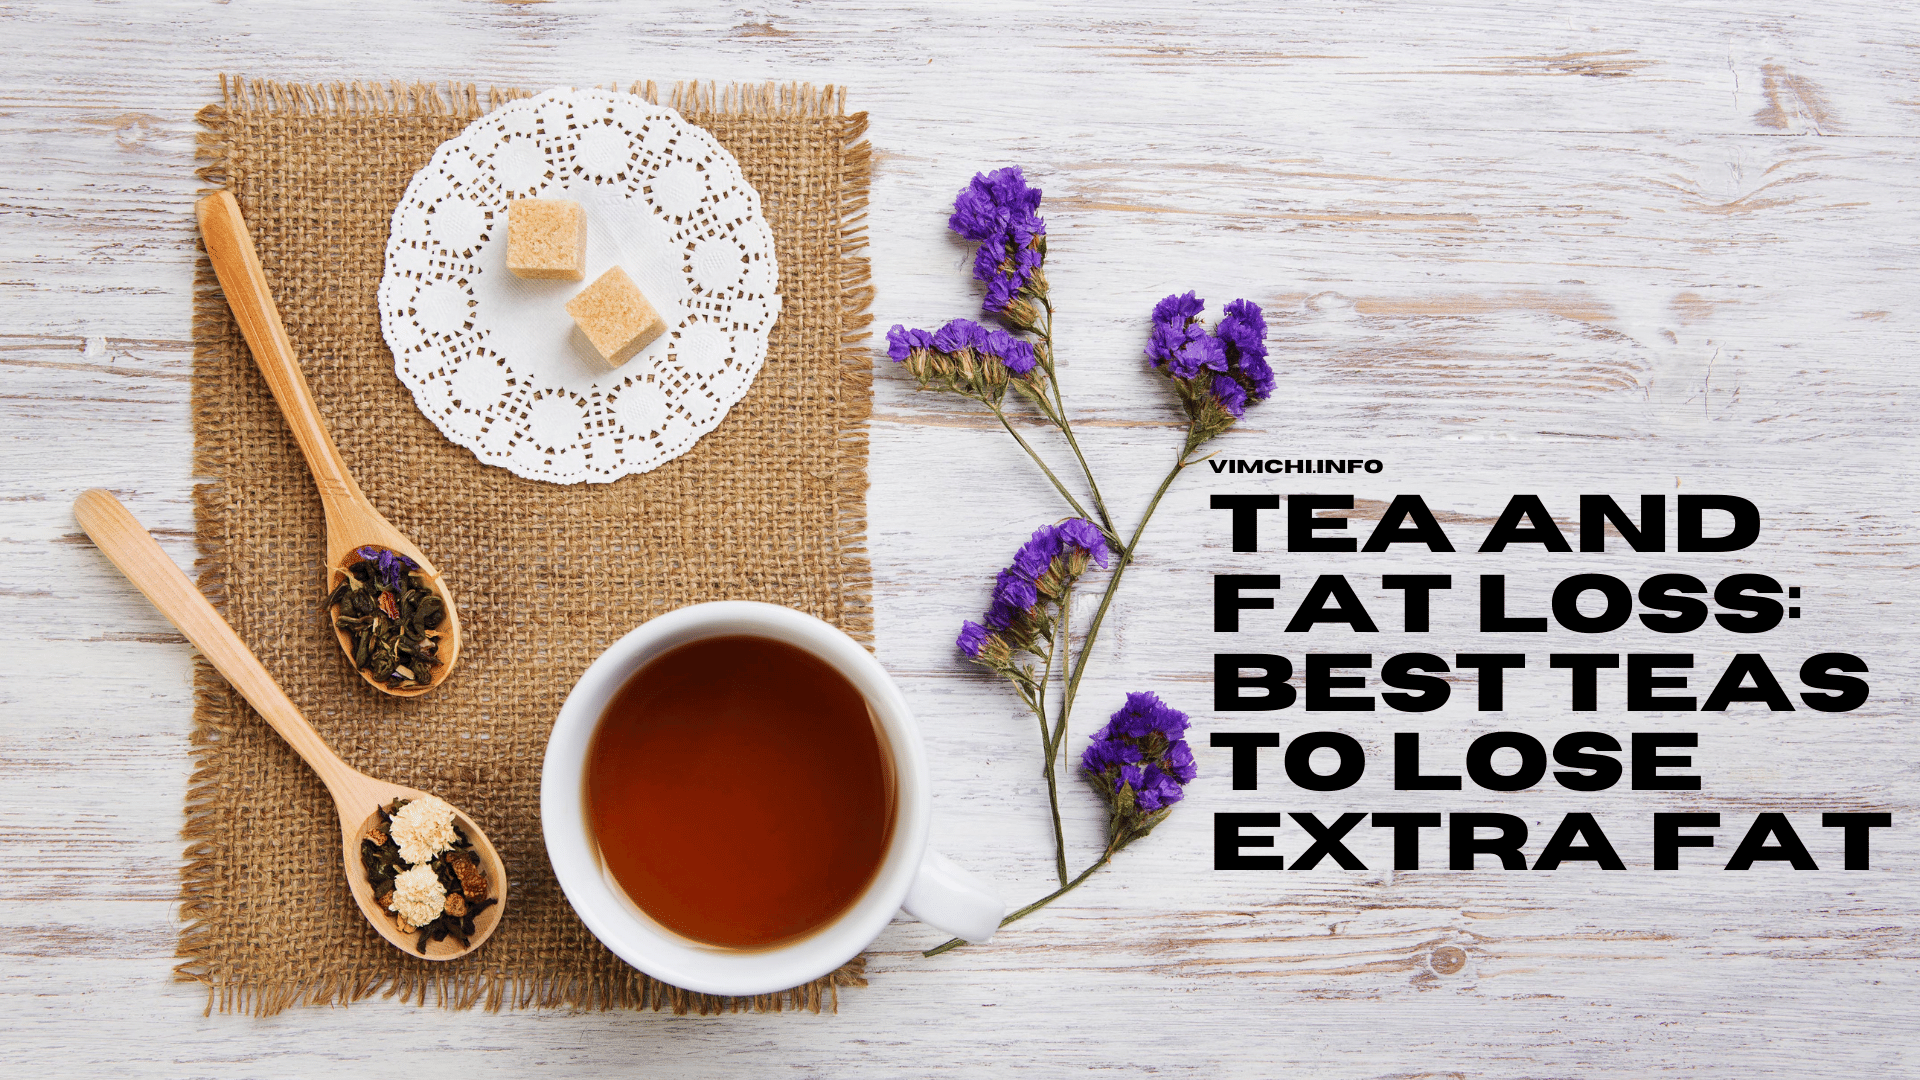 Tea and Fat Loss Best Teas to Lose Extra Fat -- blocked